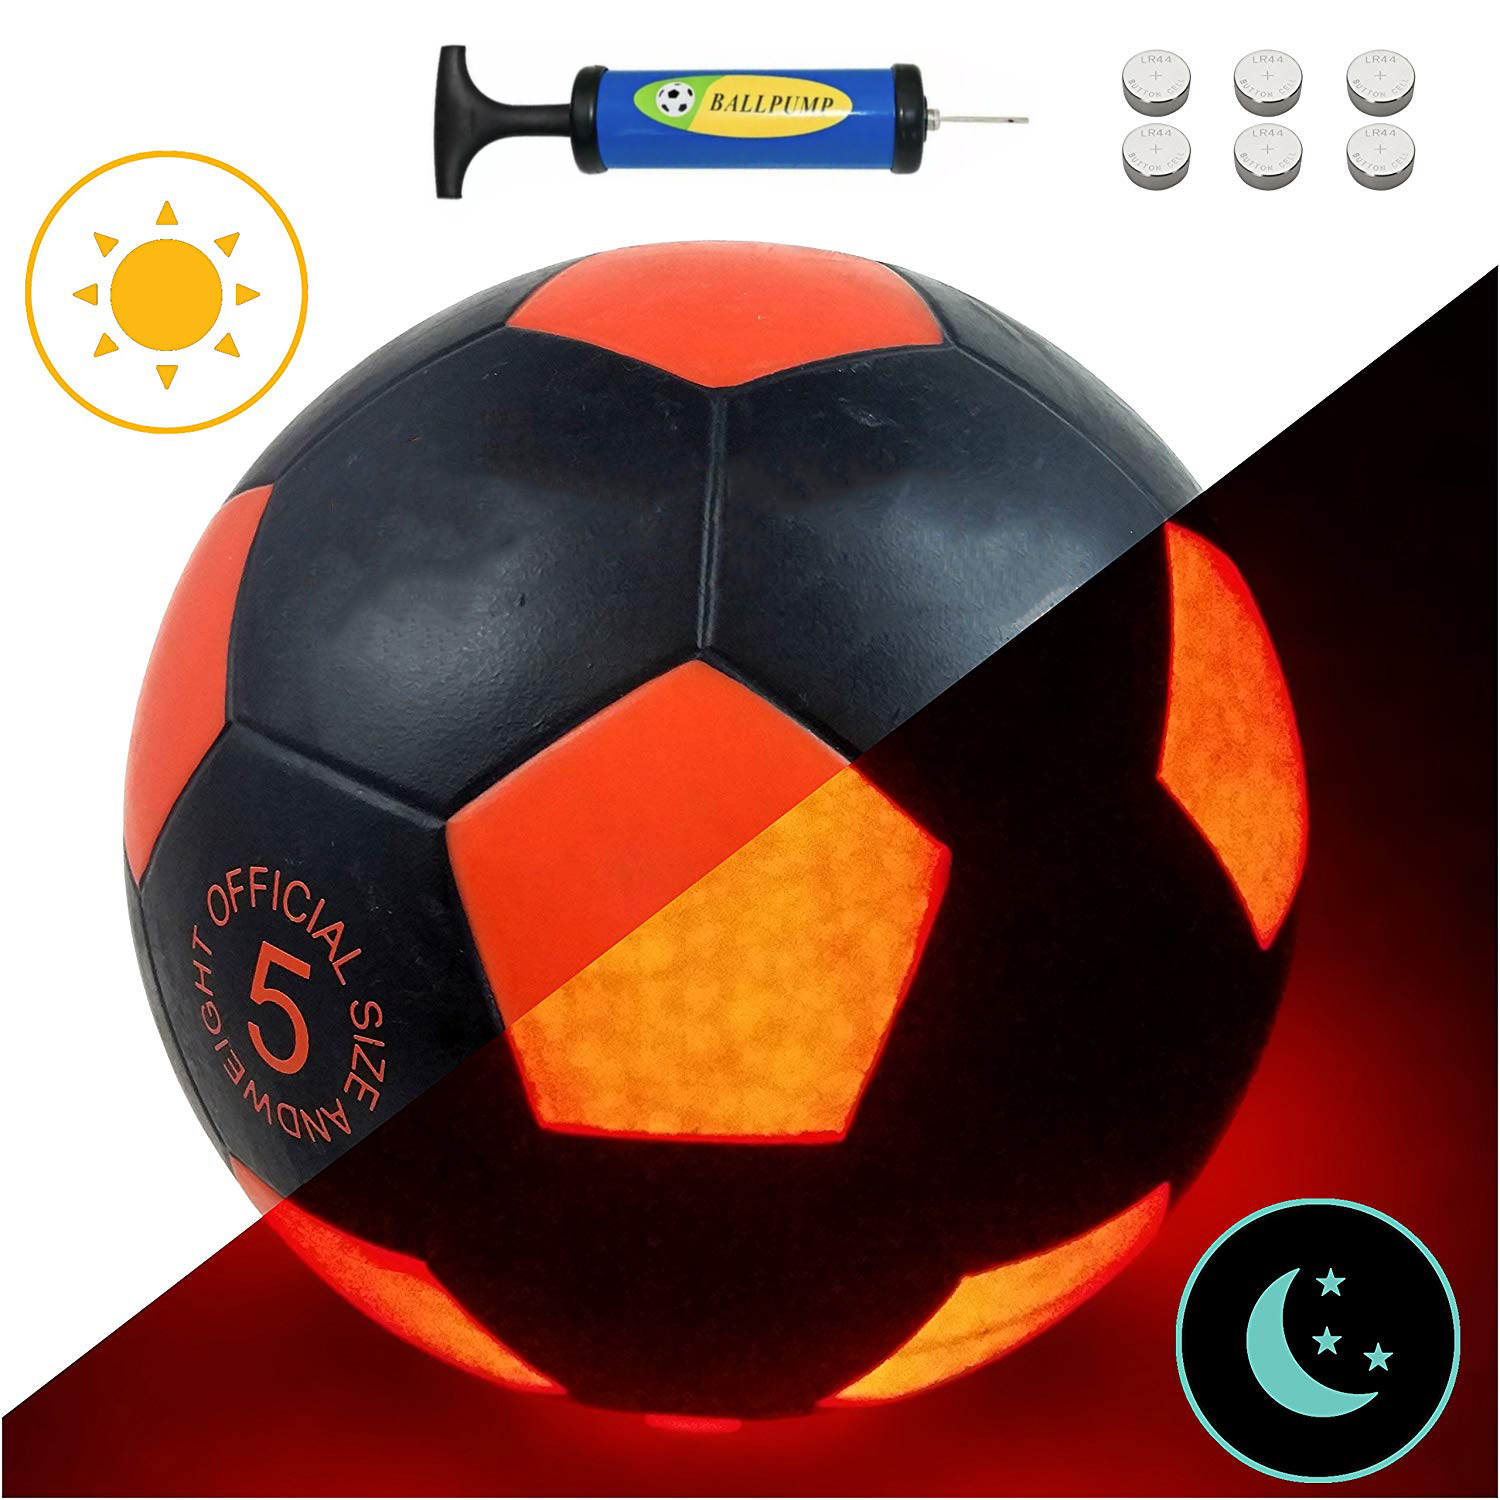 Offical Size 5 Football Light Up LED Soccer Training Ball Blazing Red Edition Glows In The Dark Super Bright LED's Glowing Balls